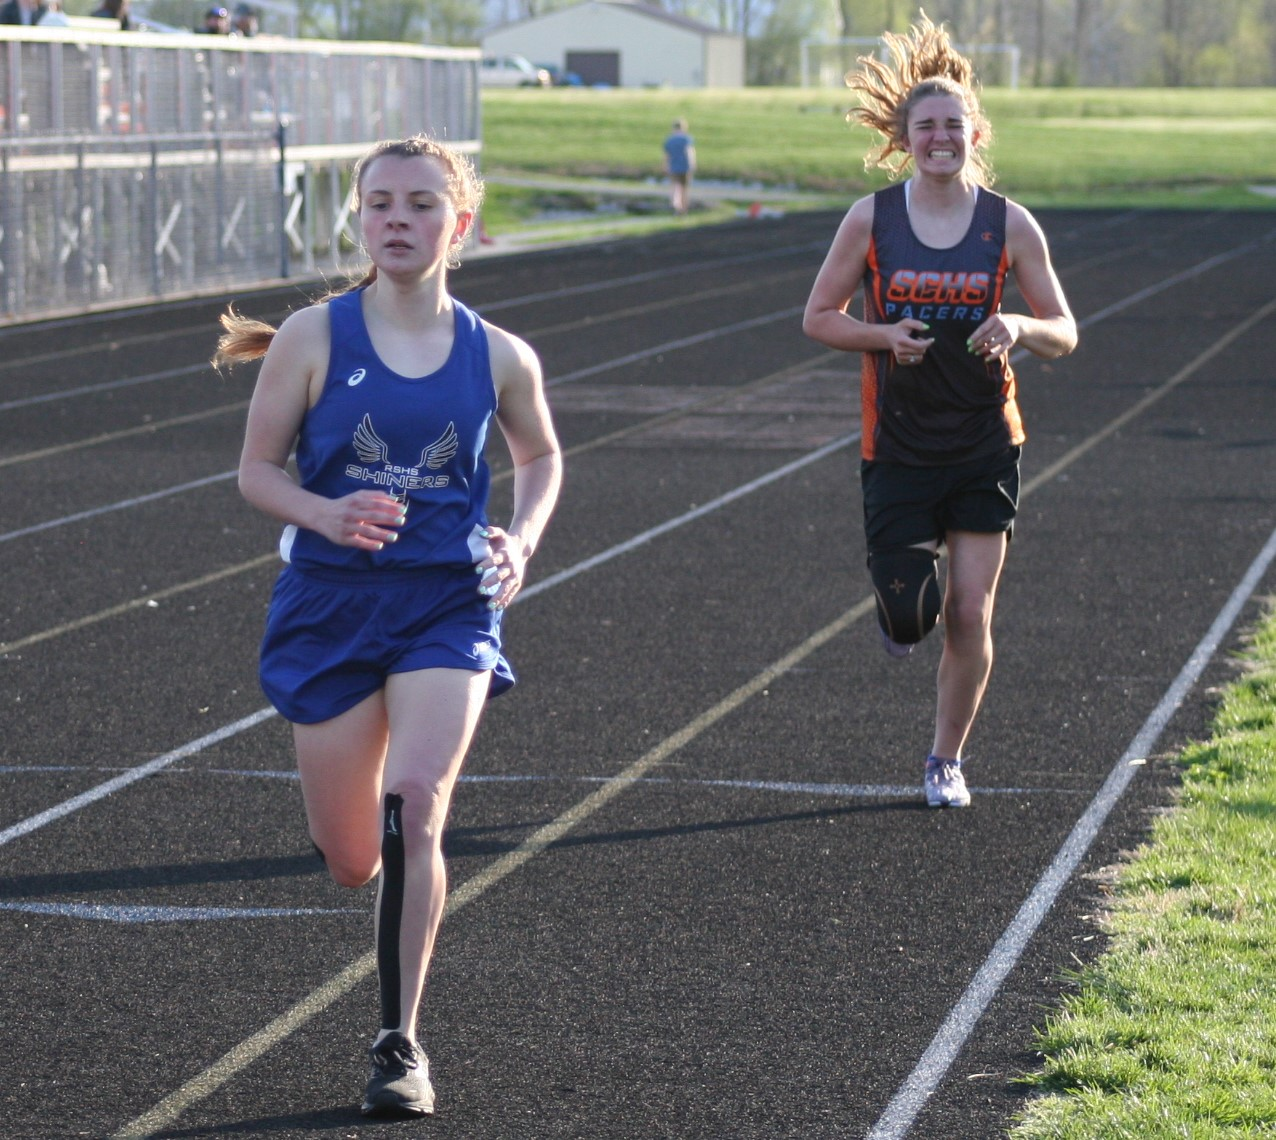 Shiners Track Competed at Lawrenceburg